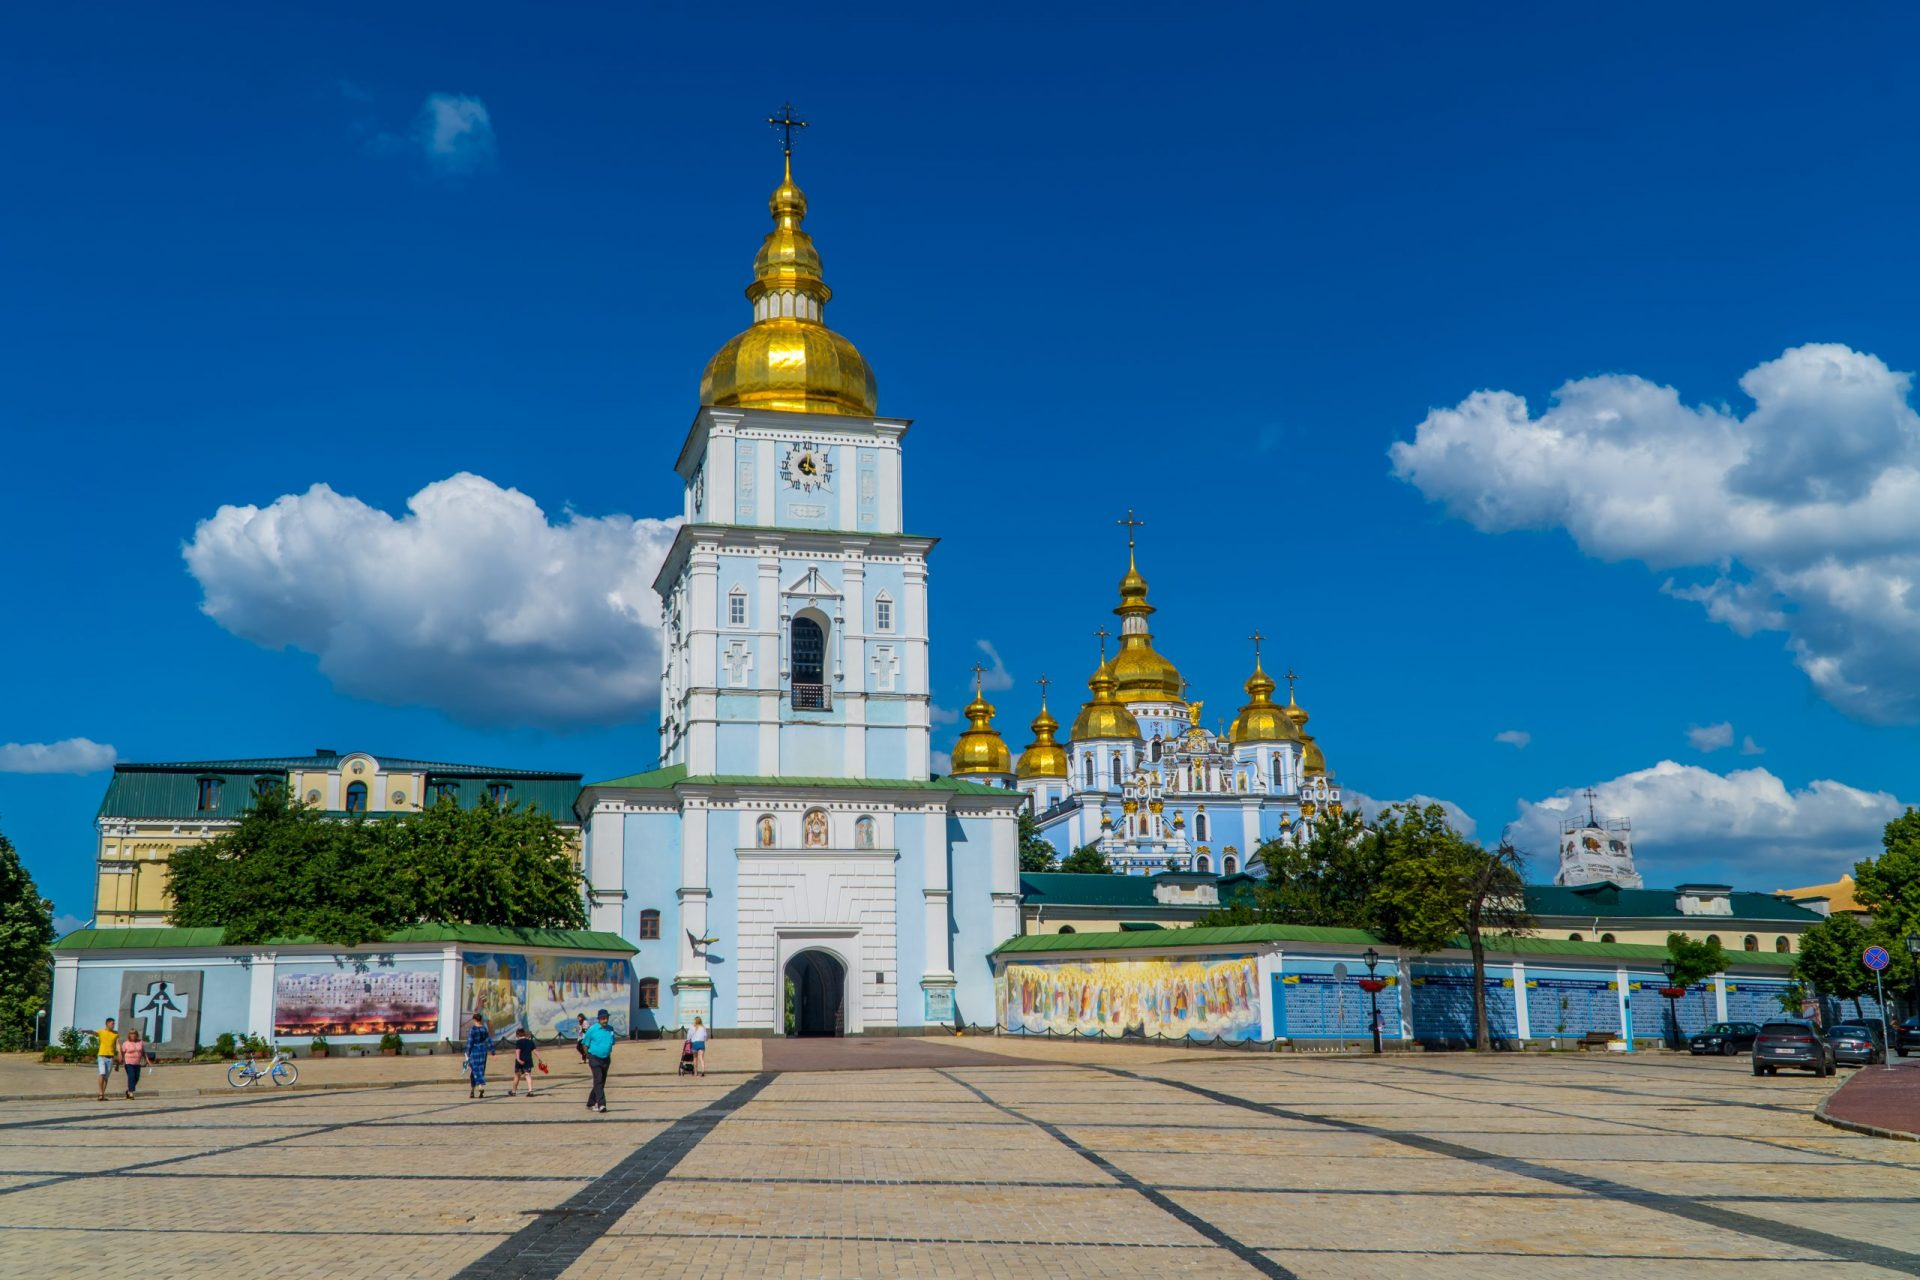 Best things to do in Kiev - panoramic view of St. Michael's Square with the gold-domed St. Michael's Cathedral